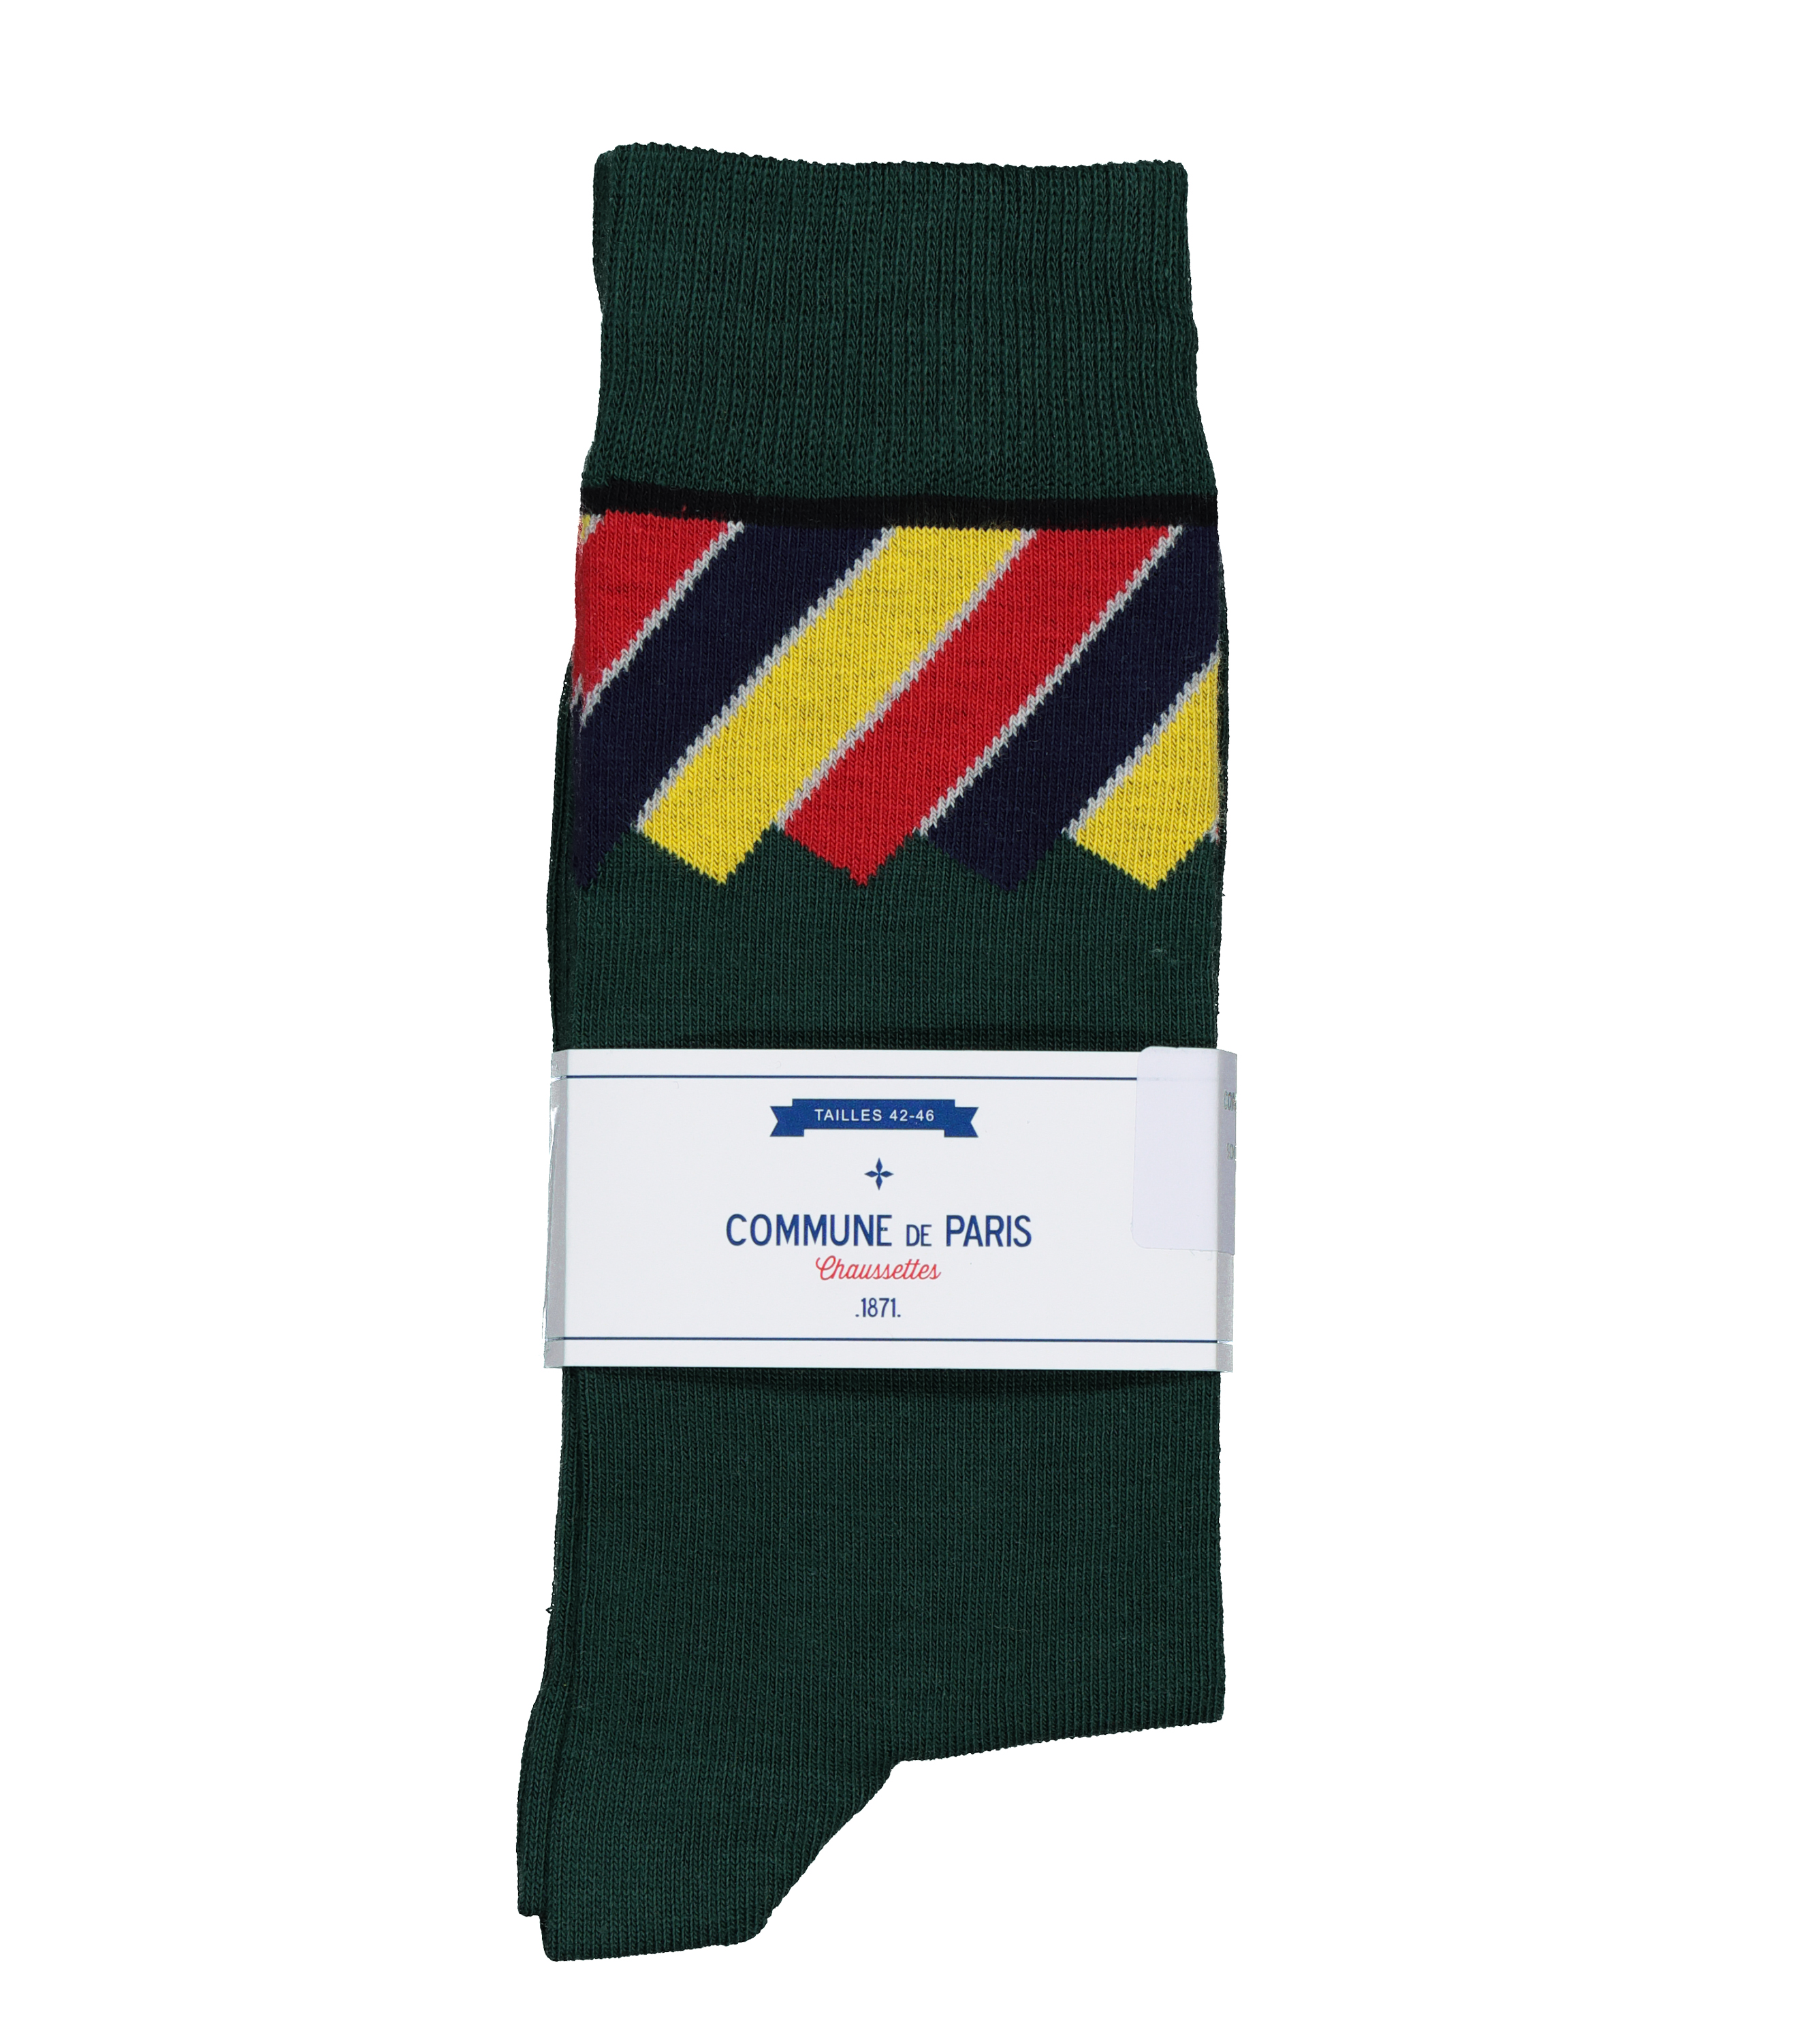 SOCKS CARROUSEL - Green